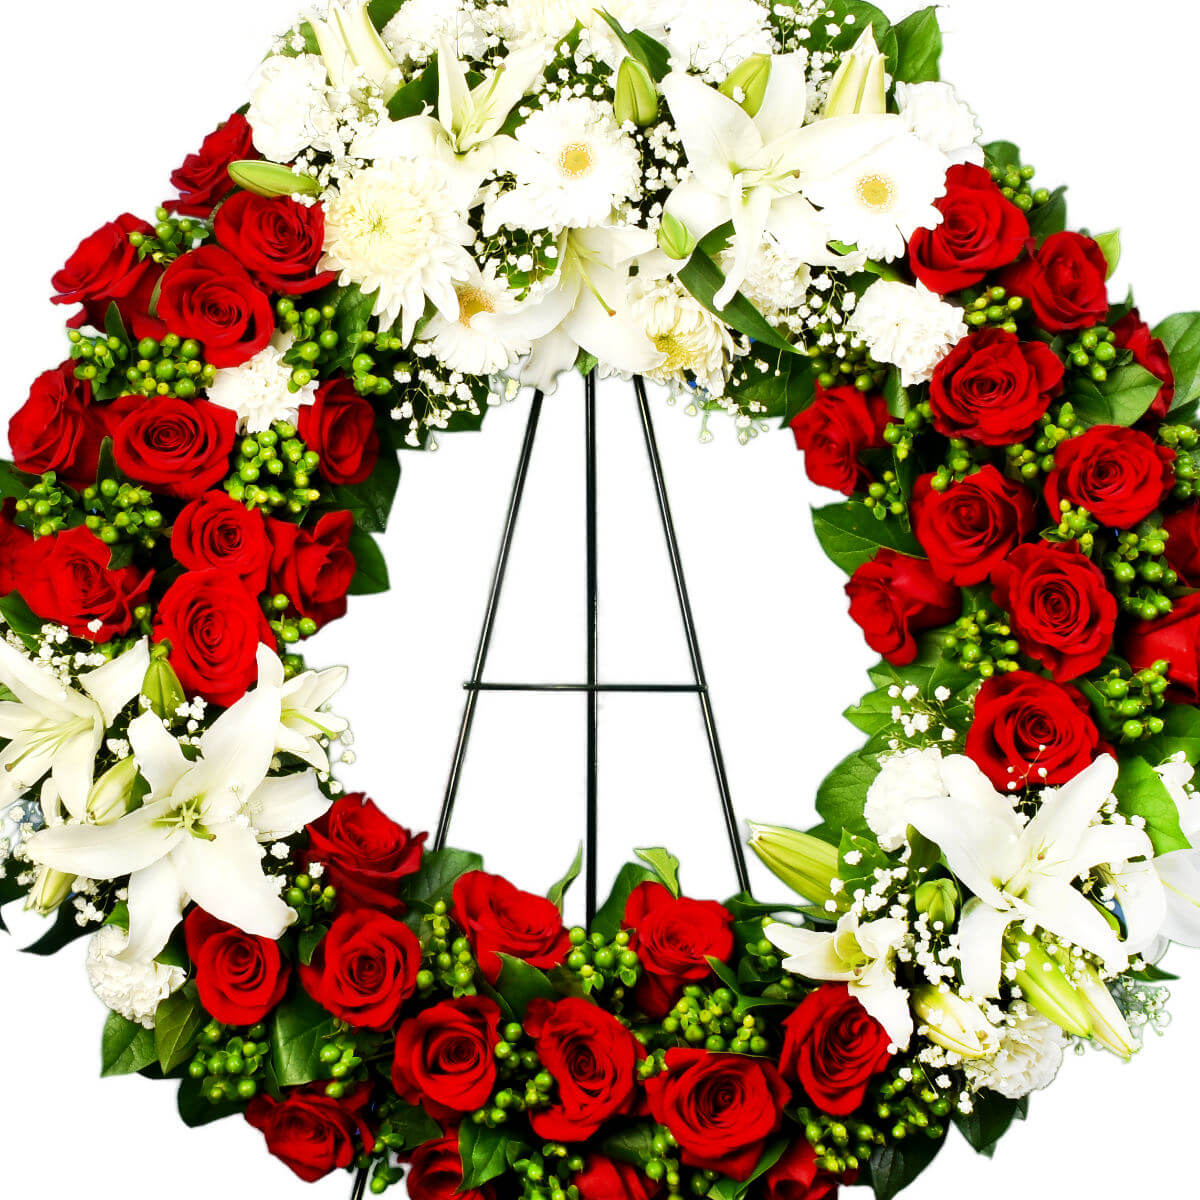 North Vancouver Funeral Flower Wreath | Vancouver Florist Adele Rae